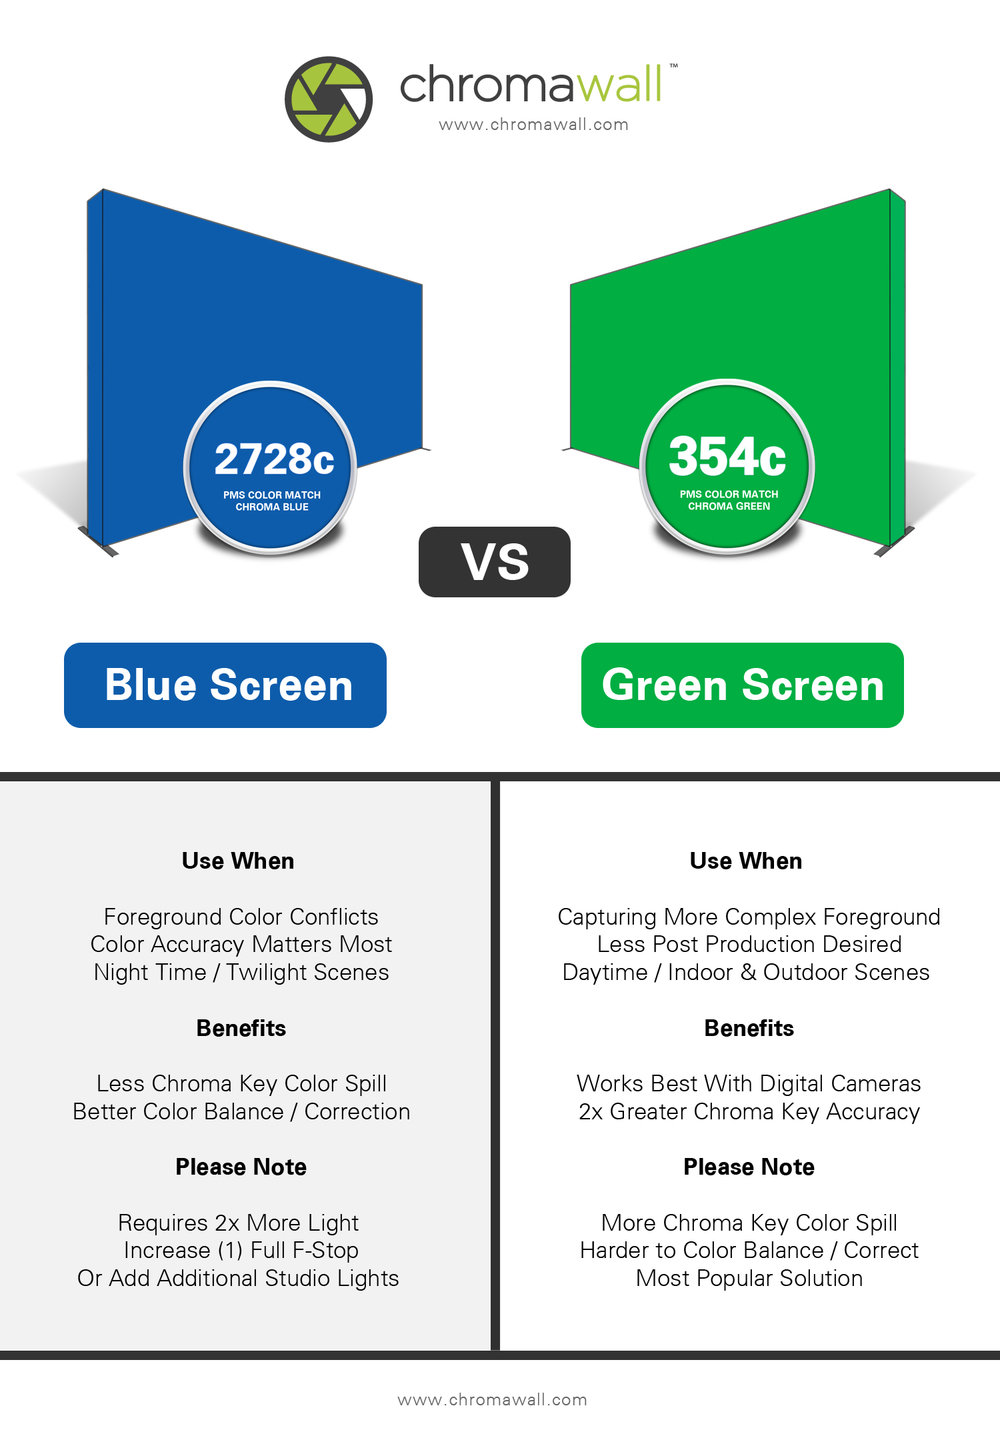 green screen vs. blue screen